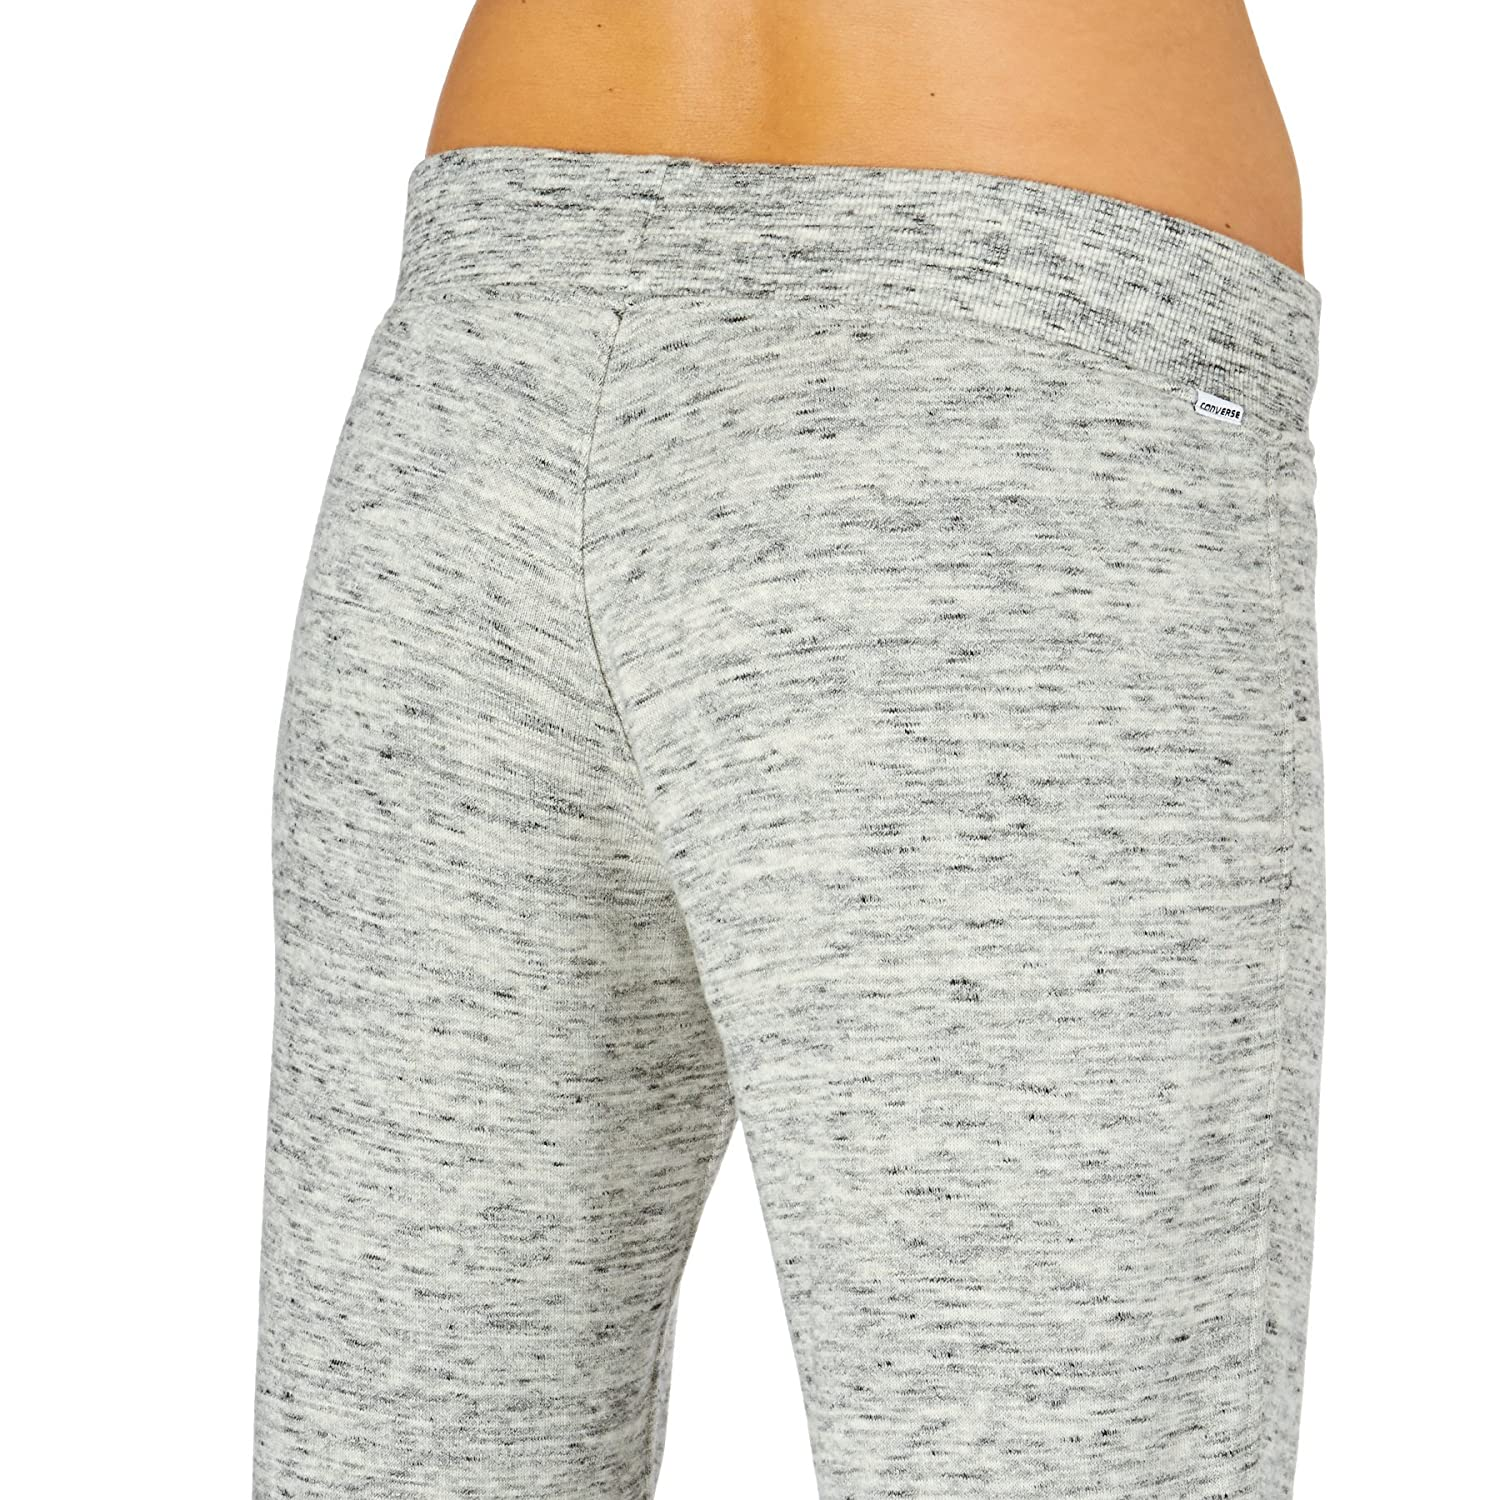 Converse Womens Womens Quilted Pants in Grey Marl - 4-6  Converse   Amazon.co.uk  Clothing da2862d1dc3